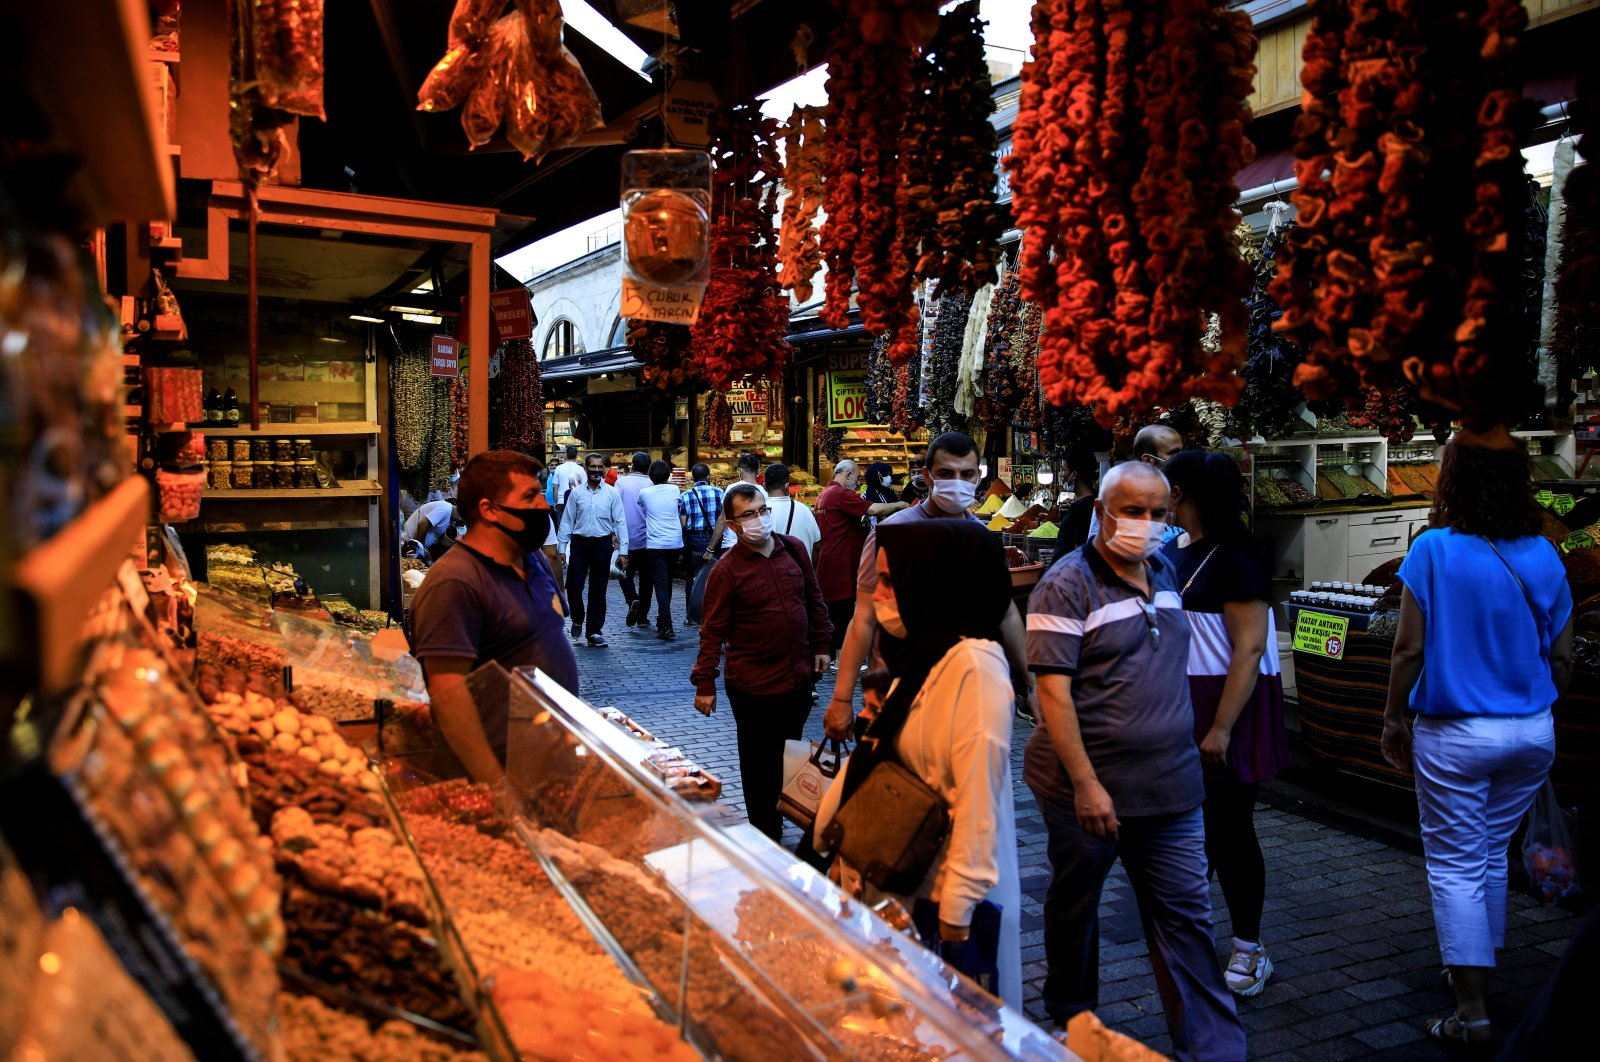 People shop at the Spice Market, also known as the Egyptian Bazaar, as the outbreak of the coronavirus continues, in Istanbul, Turkey, Sept. 9, 2020. (Reuters Photo)